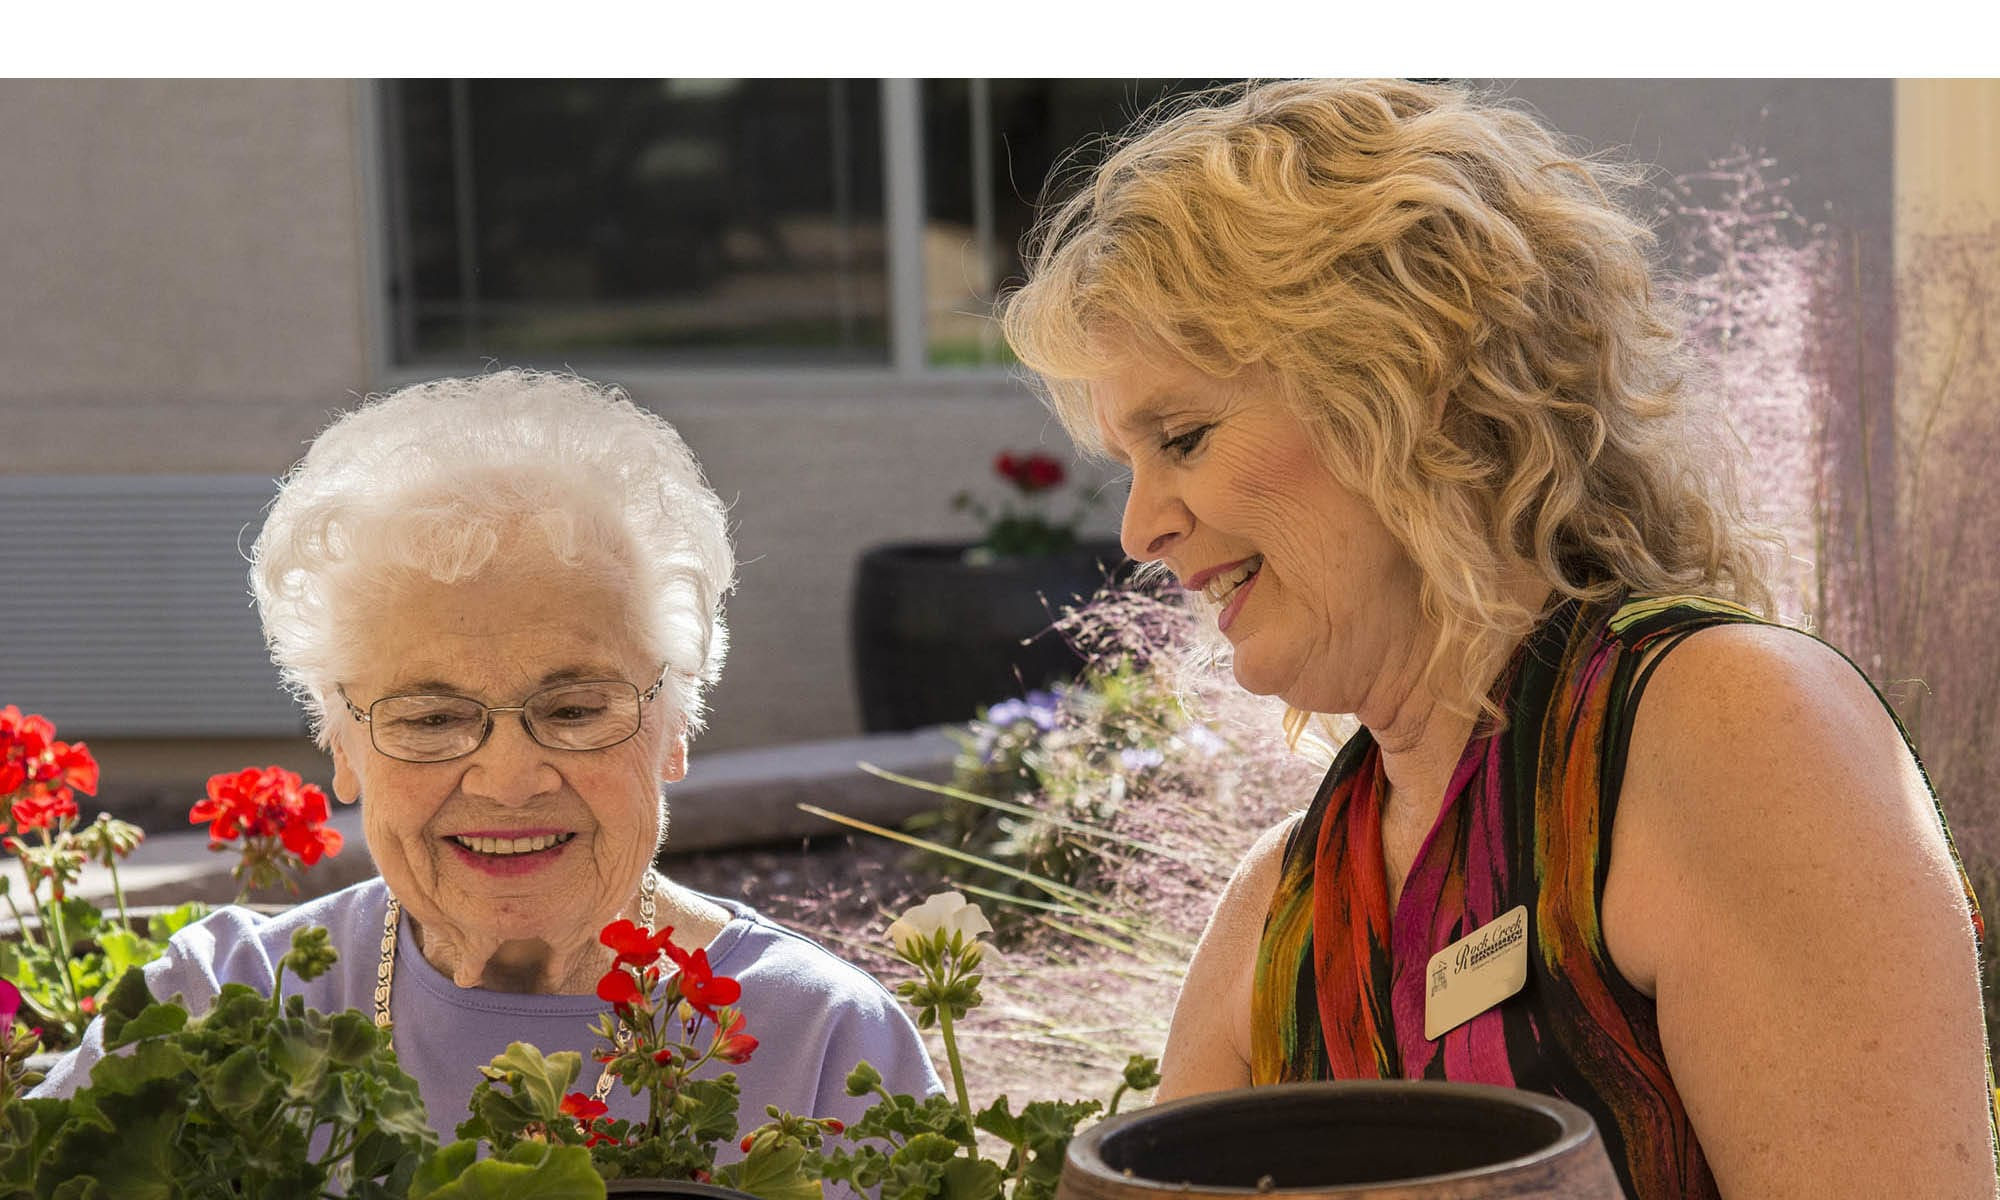 Alzheimer's Care at North Ridge Alzheimer's Special Care Center